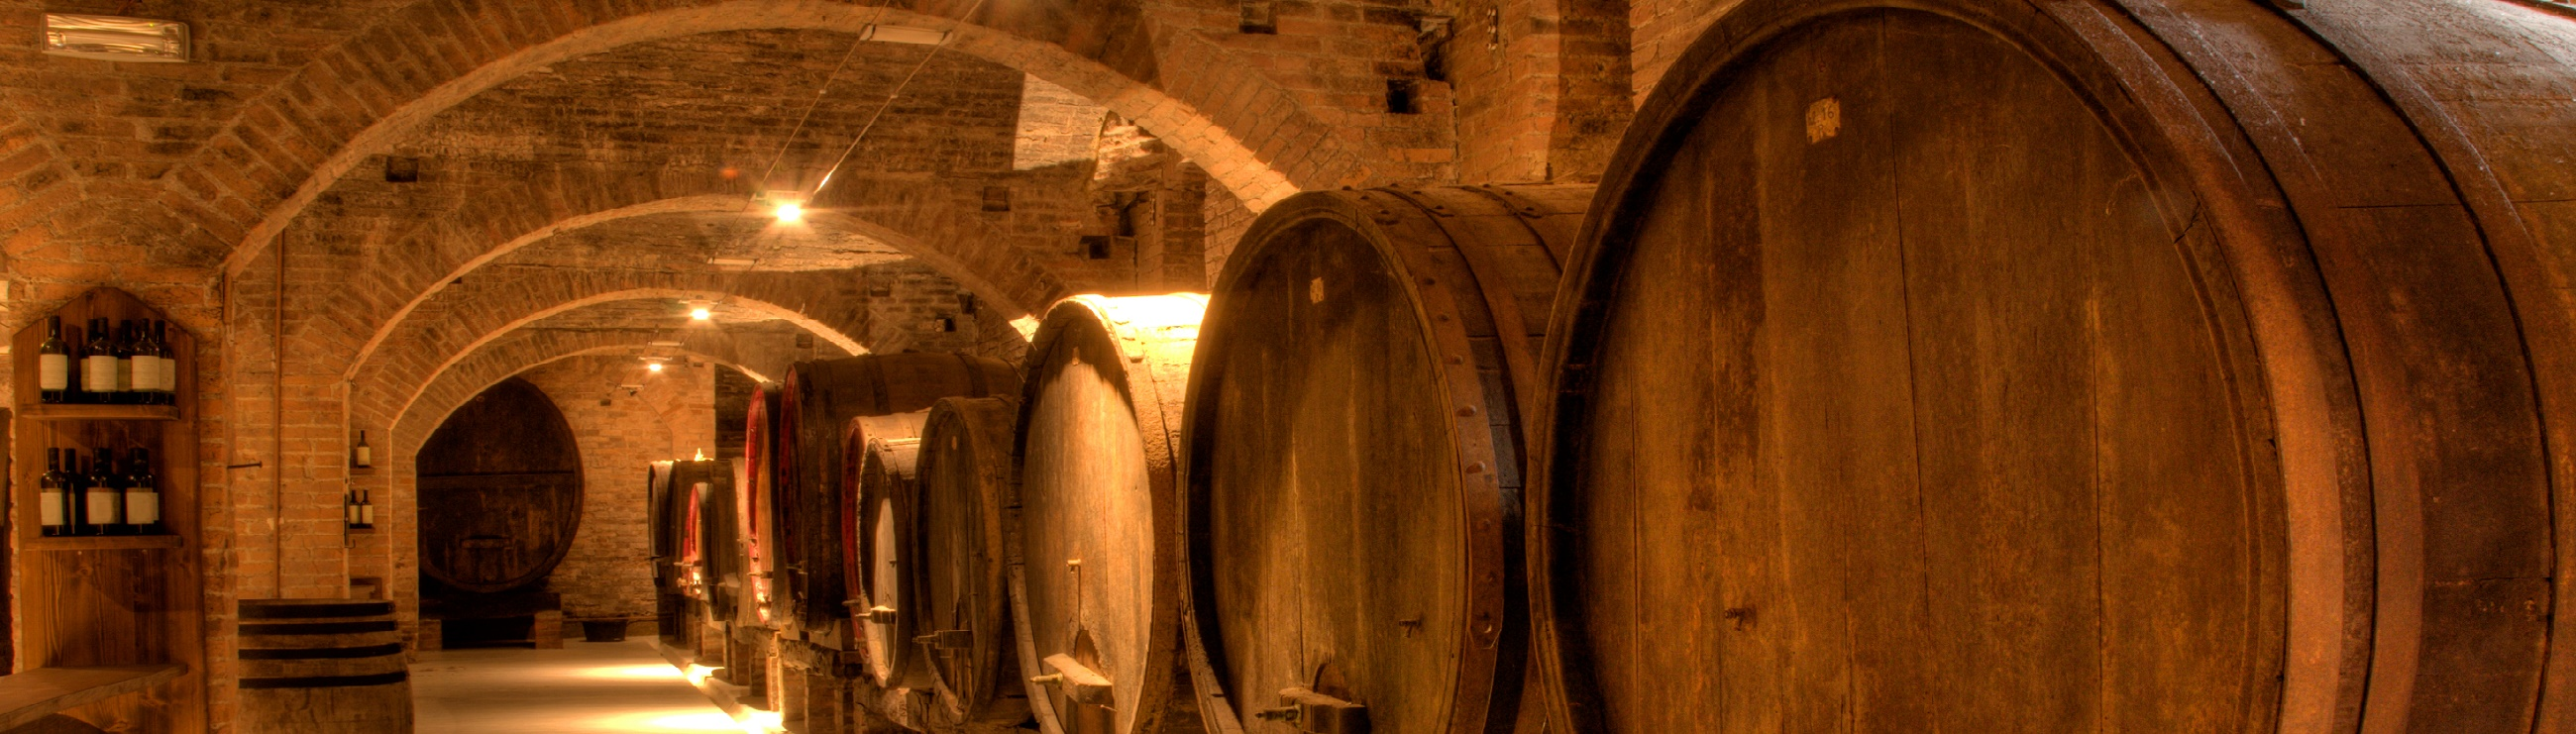 Wine cellar in ancient building in Tuscany, Italy